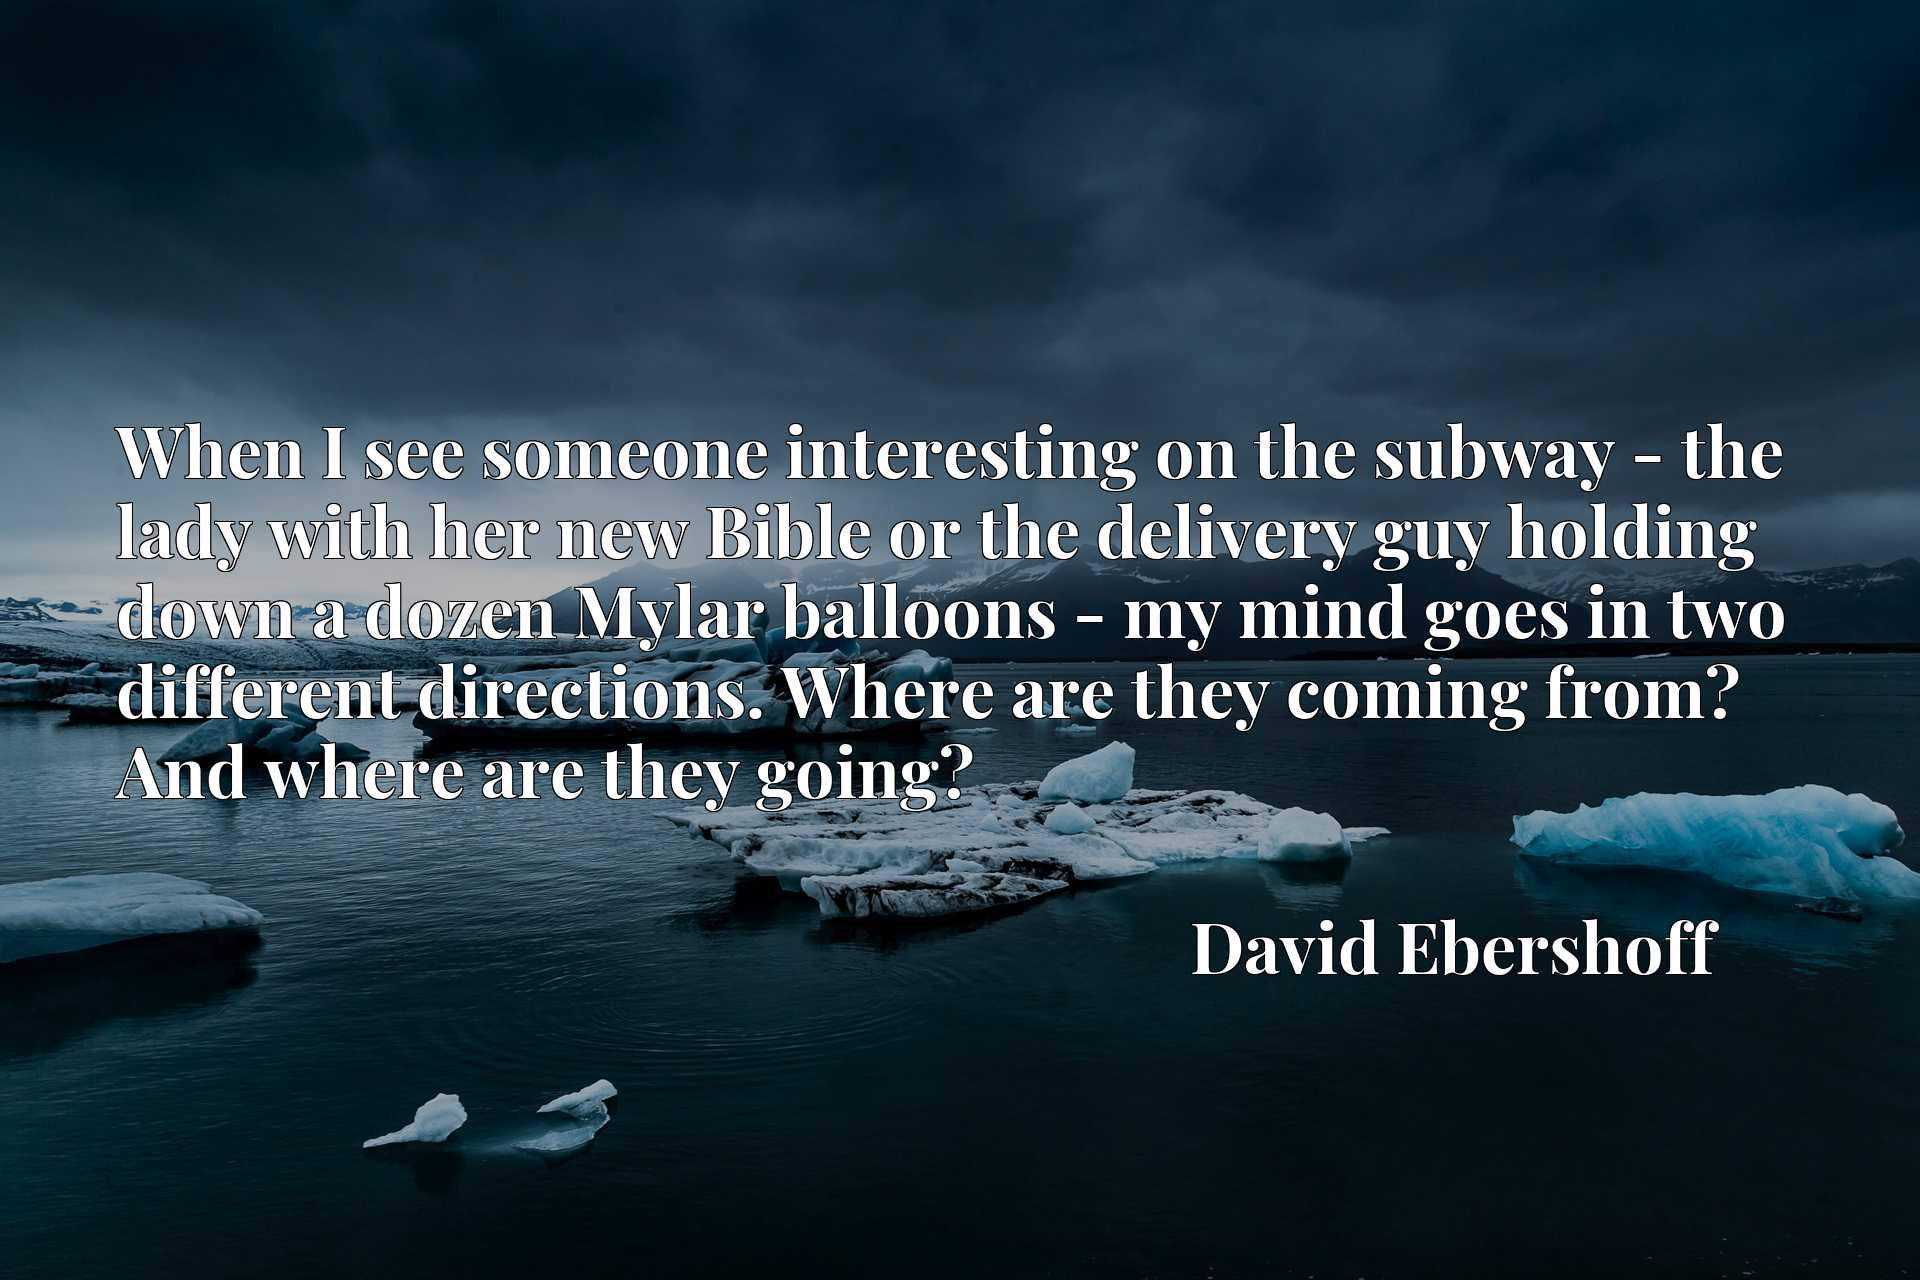 When I see someone interesting on the subway - the lady with her new Bible or the delivery guy holding down a dozen Mylar balloons - my mind goes in two different directions. Where are they coming from? And where are they going?